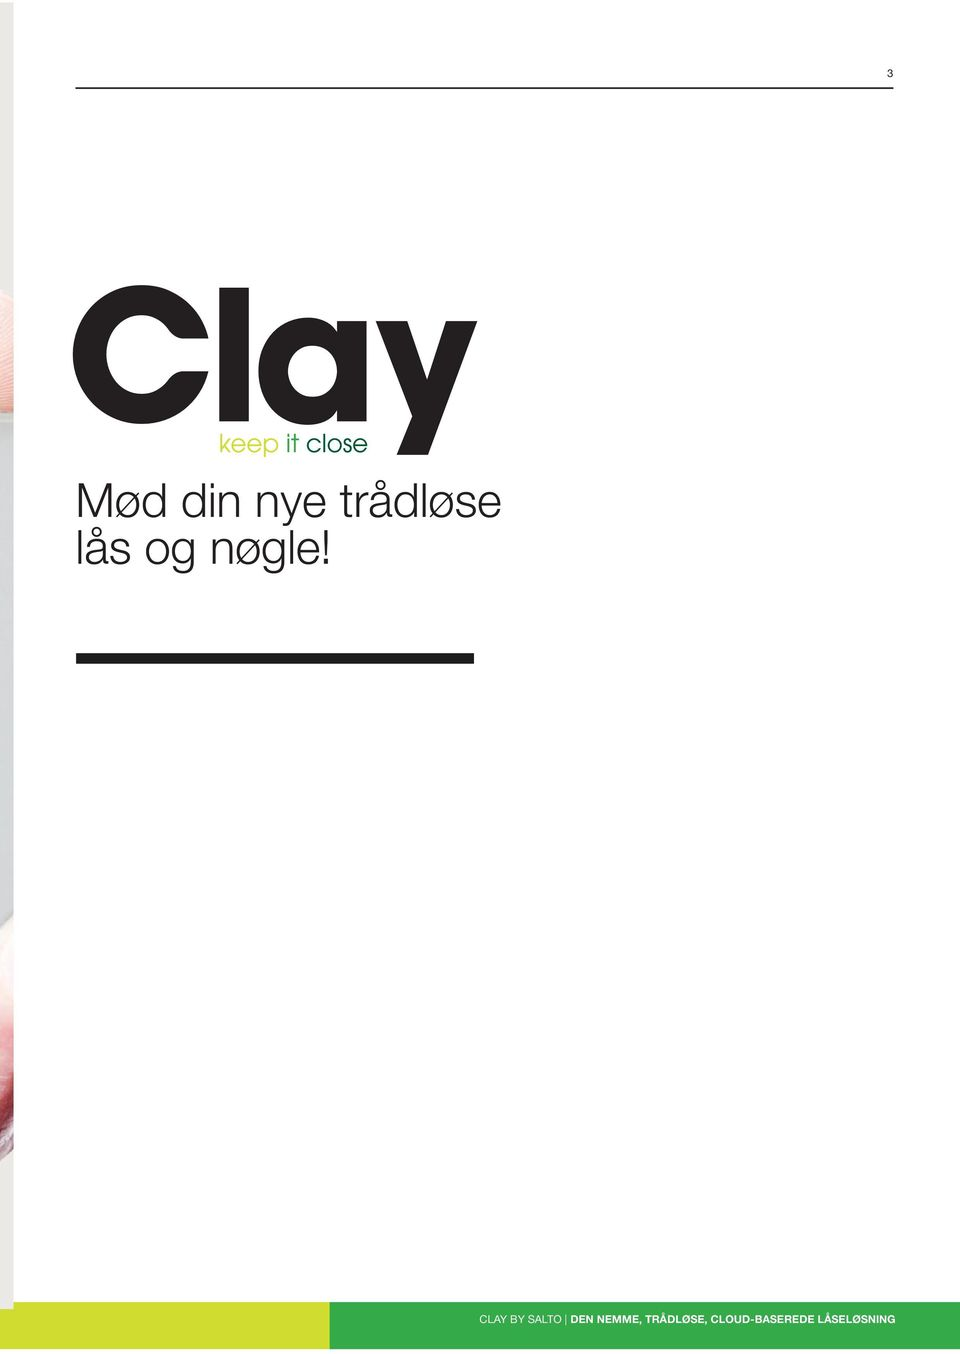 CLAY BY SALTO DEN NEMME,